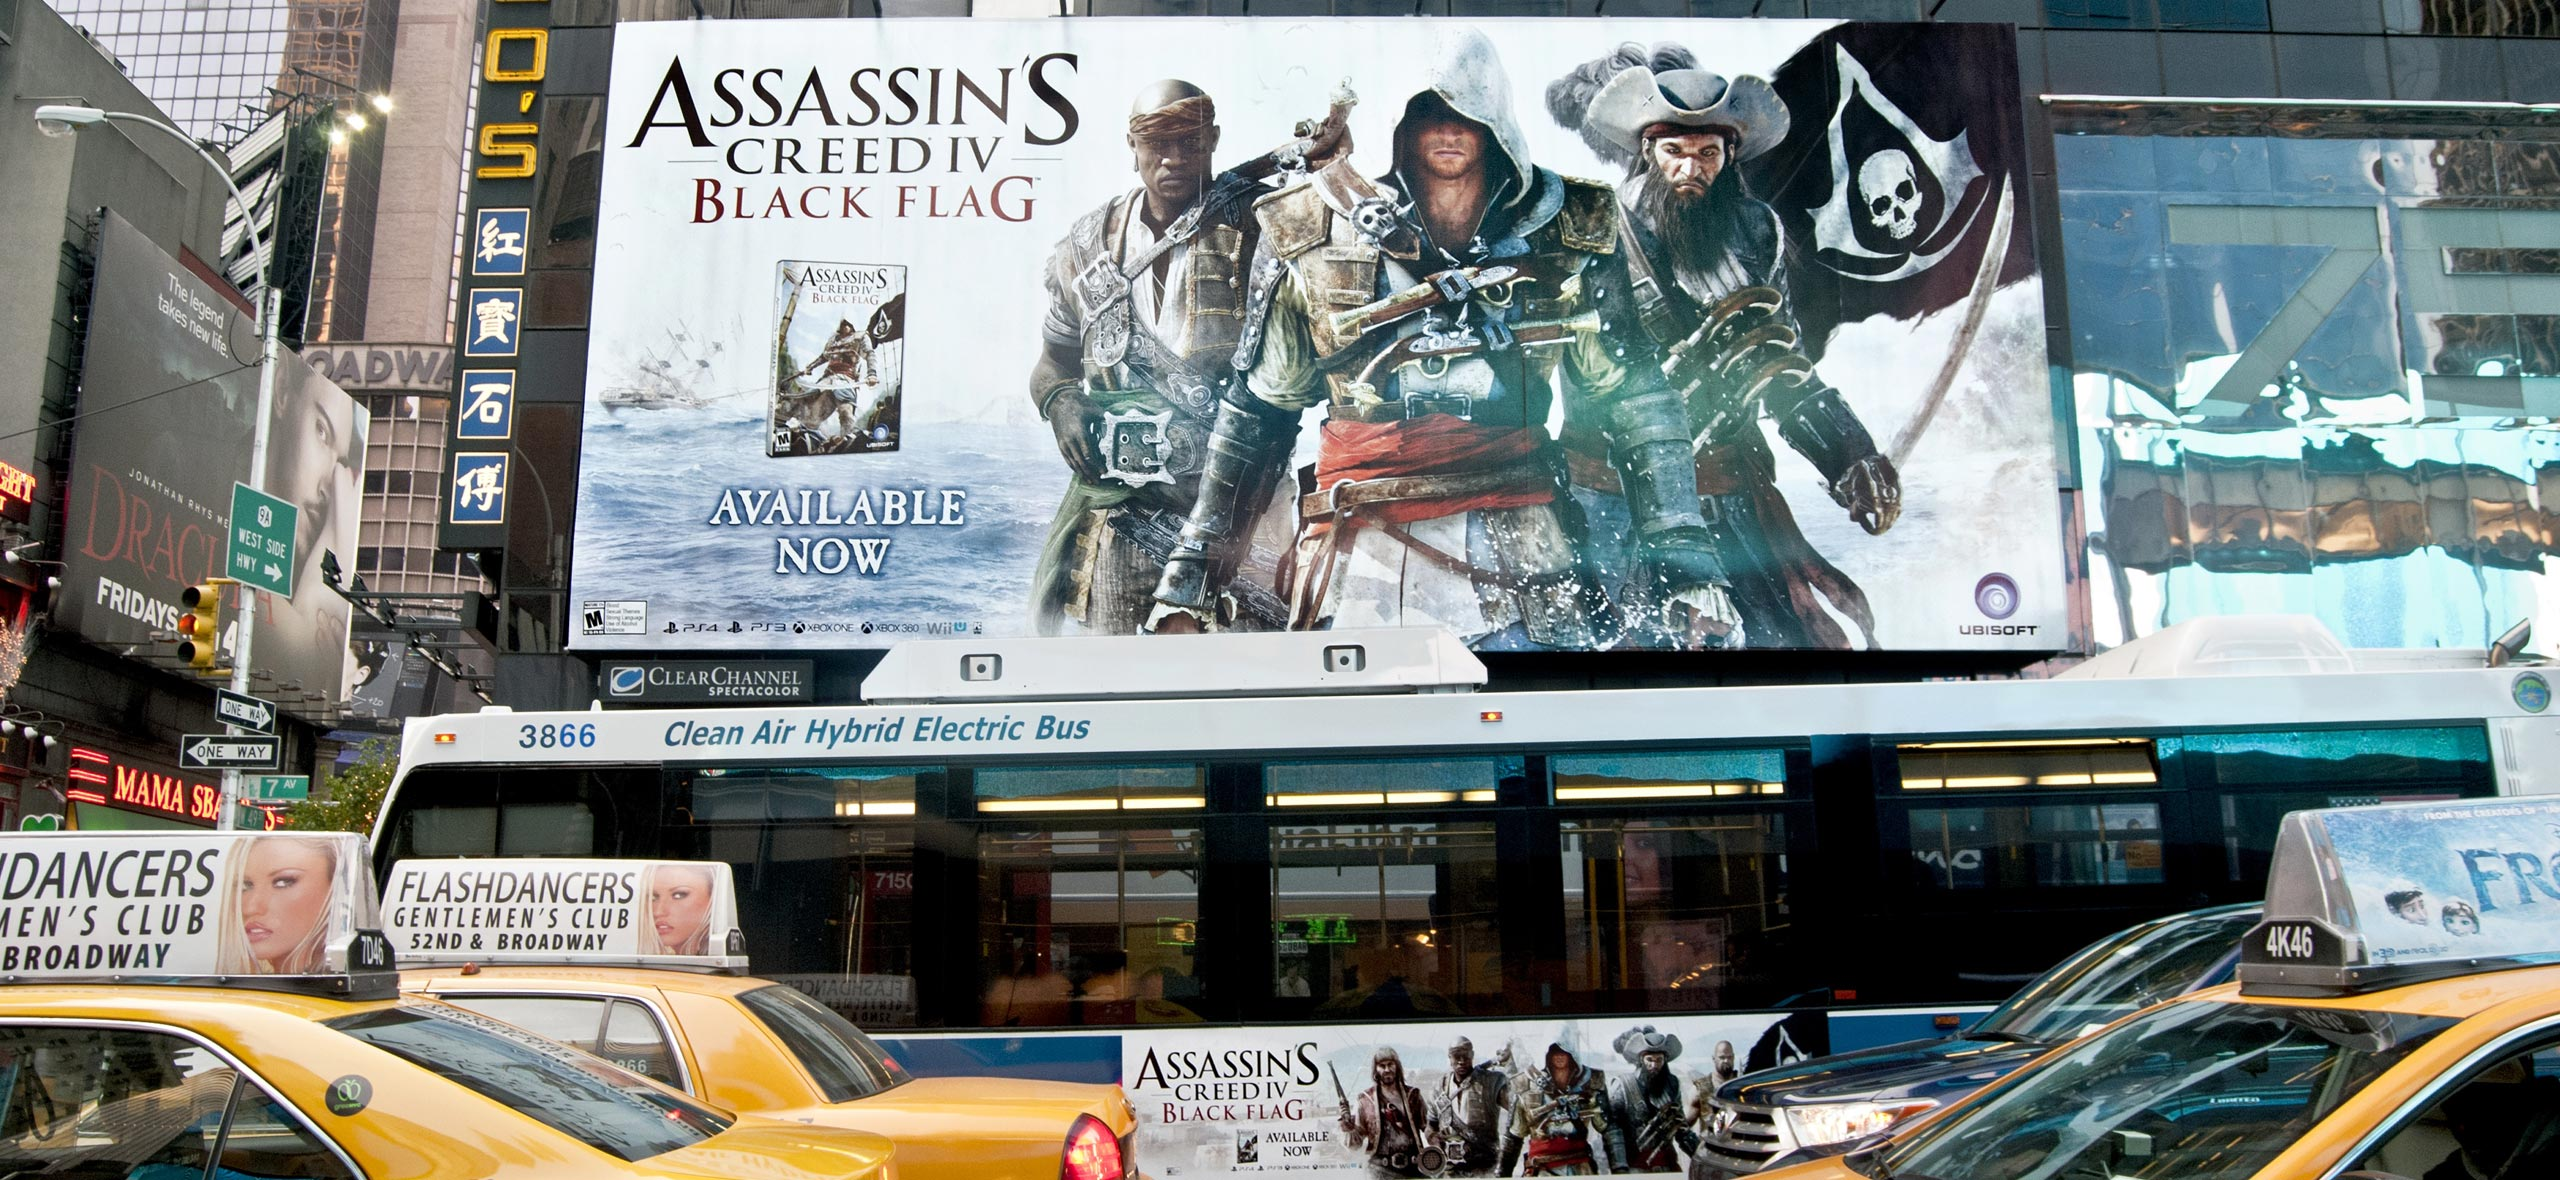 AT_ASSASINS_CREED_Black_Flag_photo_img_03